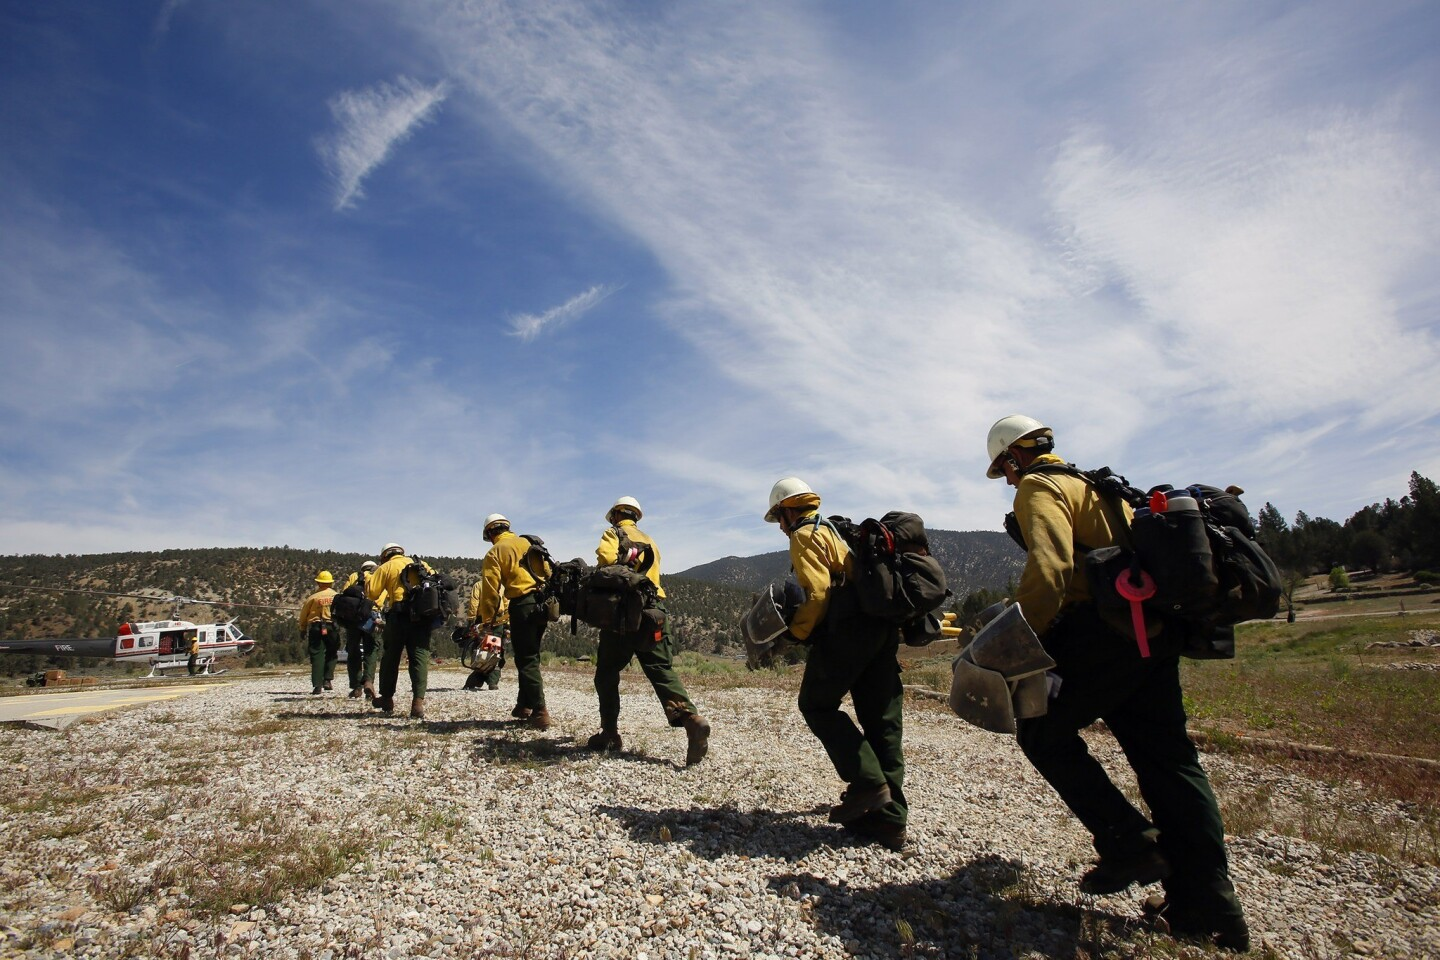 Members of the Bureau of Land Management's Kern Valley Hotshots board a helicopter at Chuchupate Ranger Station in Los Padres National Forest to be dropped high on top of mountains to fight the Grand fire. Firefighters continued battling the 3,500-acre brush fire in Kern County on Thursday morning. The fire started about 1 p.m. Wednesday near Frazier Park, and burned near the border with Los Angeles County. The fire was about 15% contained Thursday morning, officials said. The Los Angeles County Fire Department has sent about 180 personnel to assist in the firefighting effort, along with a helicopter, two bulldozers and two water tanker trucks.